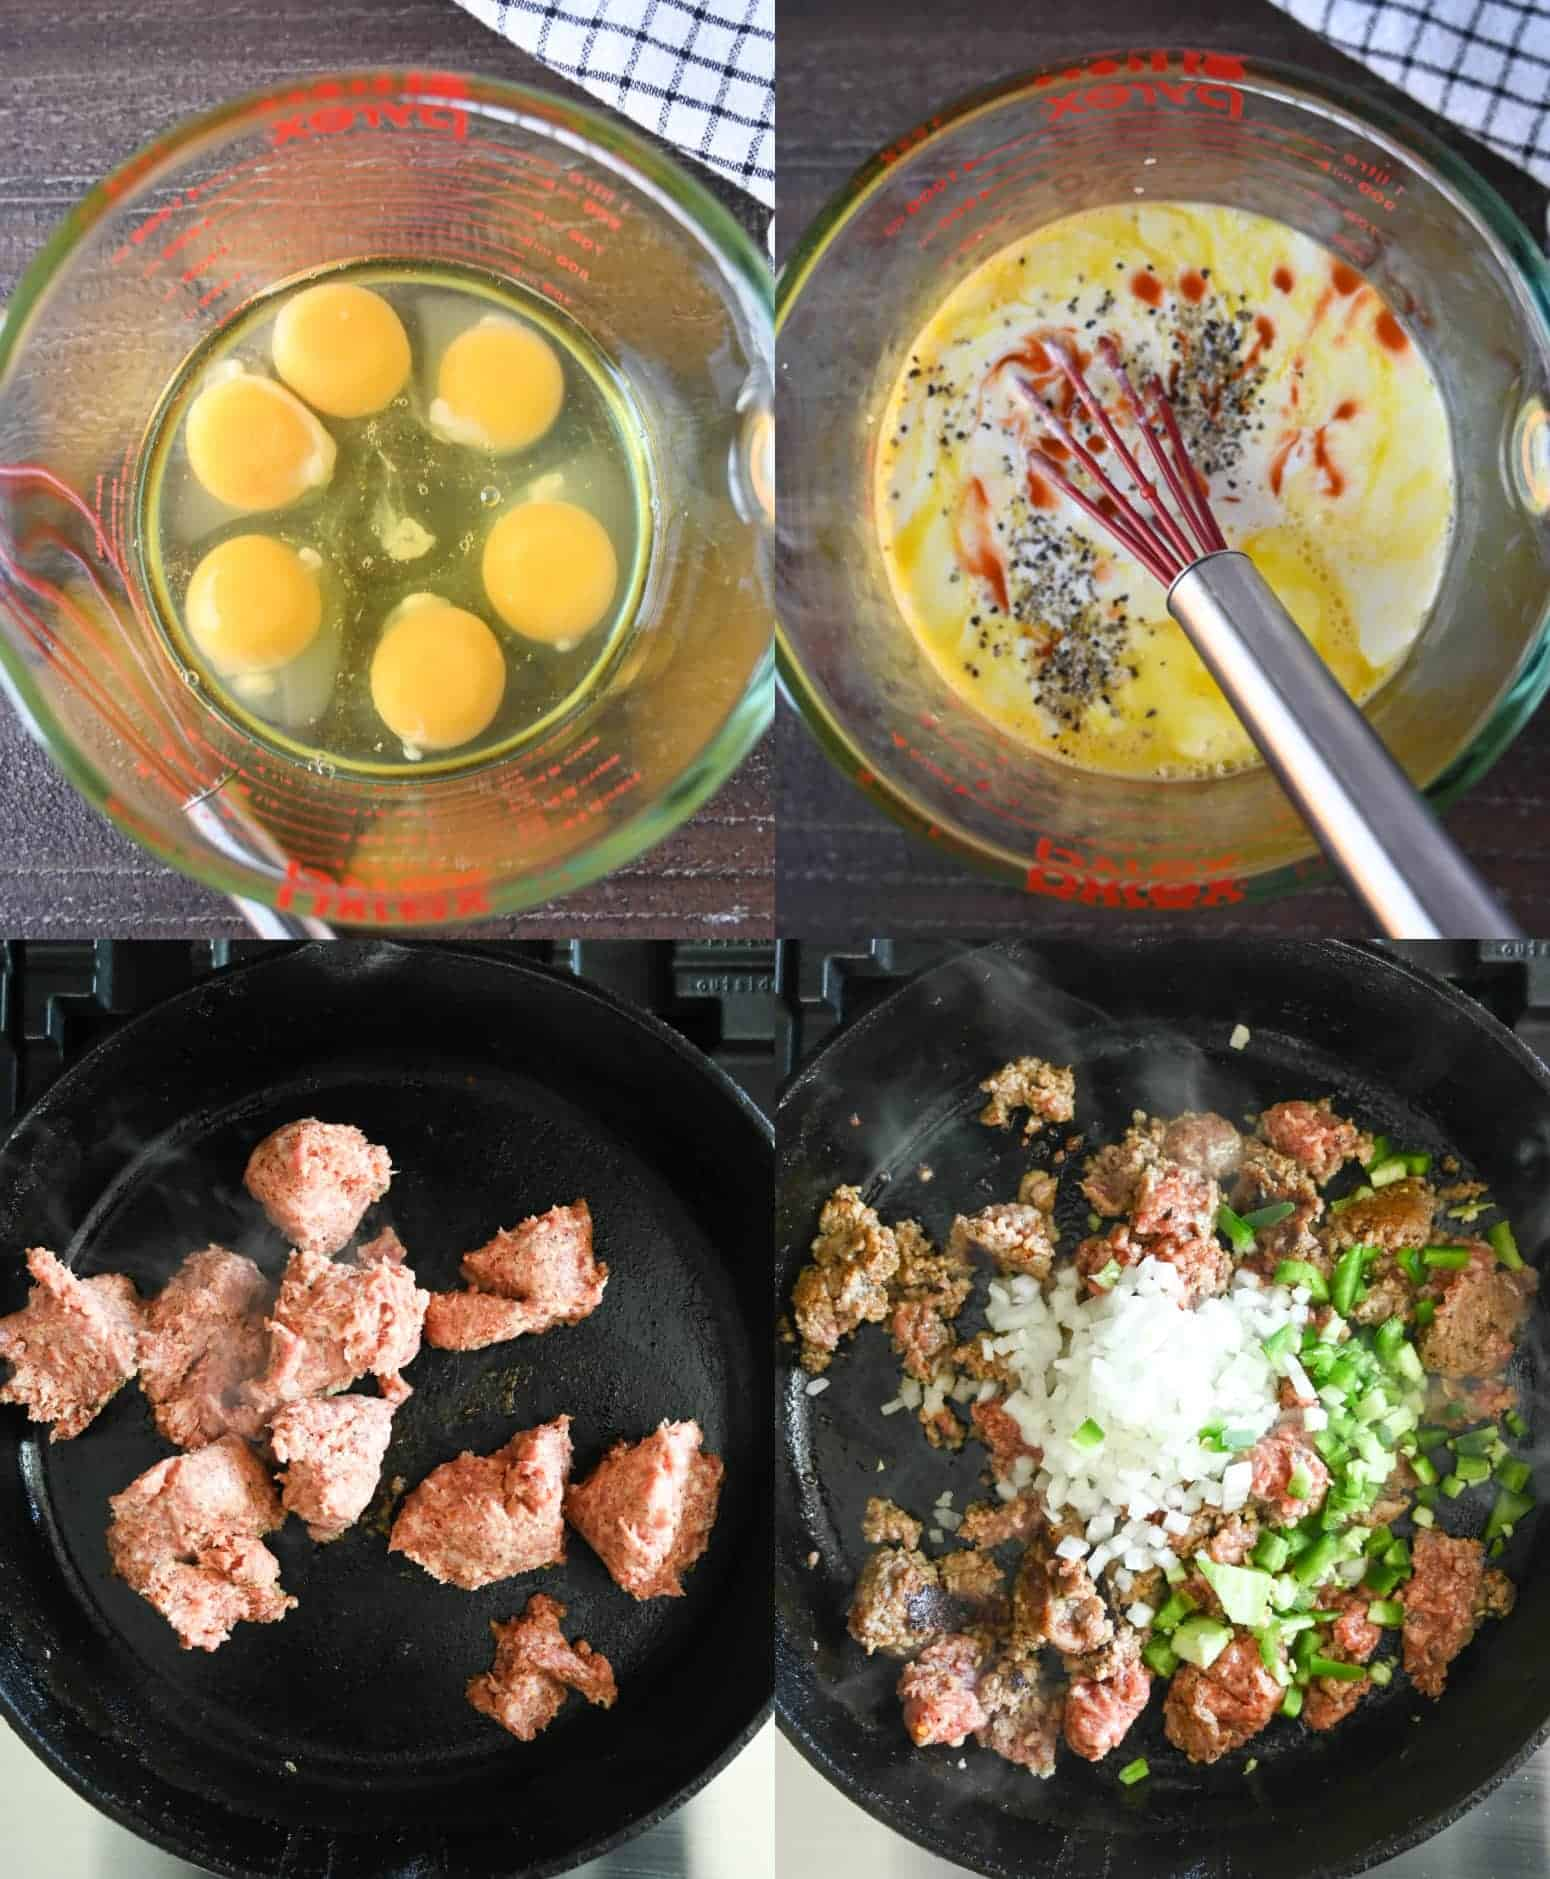 Four process photos. First one, eggs in a small clear bowl. Second one, eggs whisked together with milk and hot sauce. Third one, raw sausage placed in a hot skillet. Fourth one, diced onions and peppers placed on top of the ground sausage.